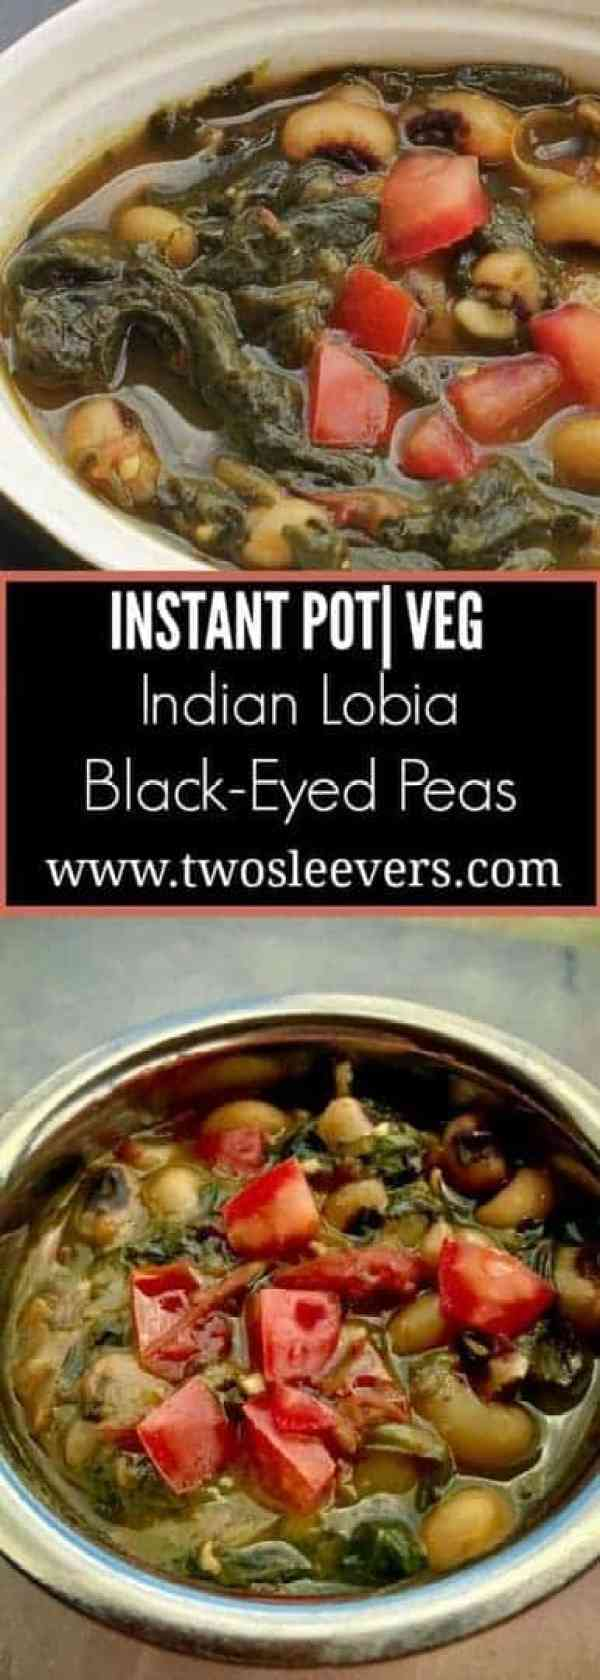 Lobia with spinach Pinterest - Instant Pot Vegetarian Gluten-Free Indian Black Eyed Peas with Spinach Lobia - https://twosleevers.com